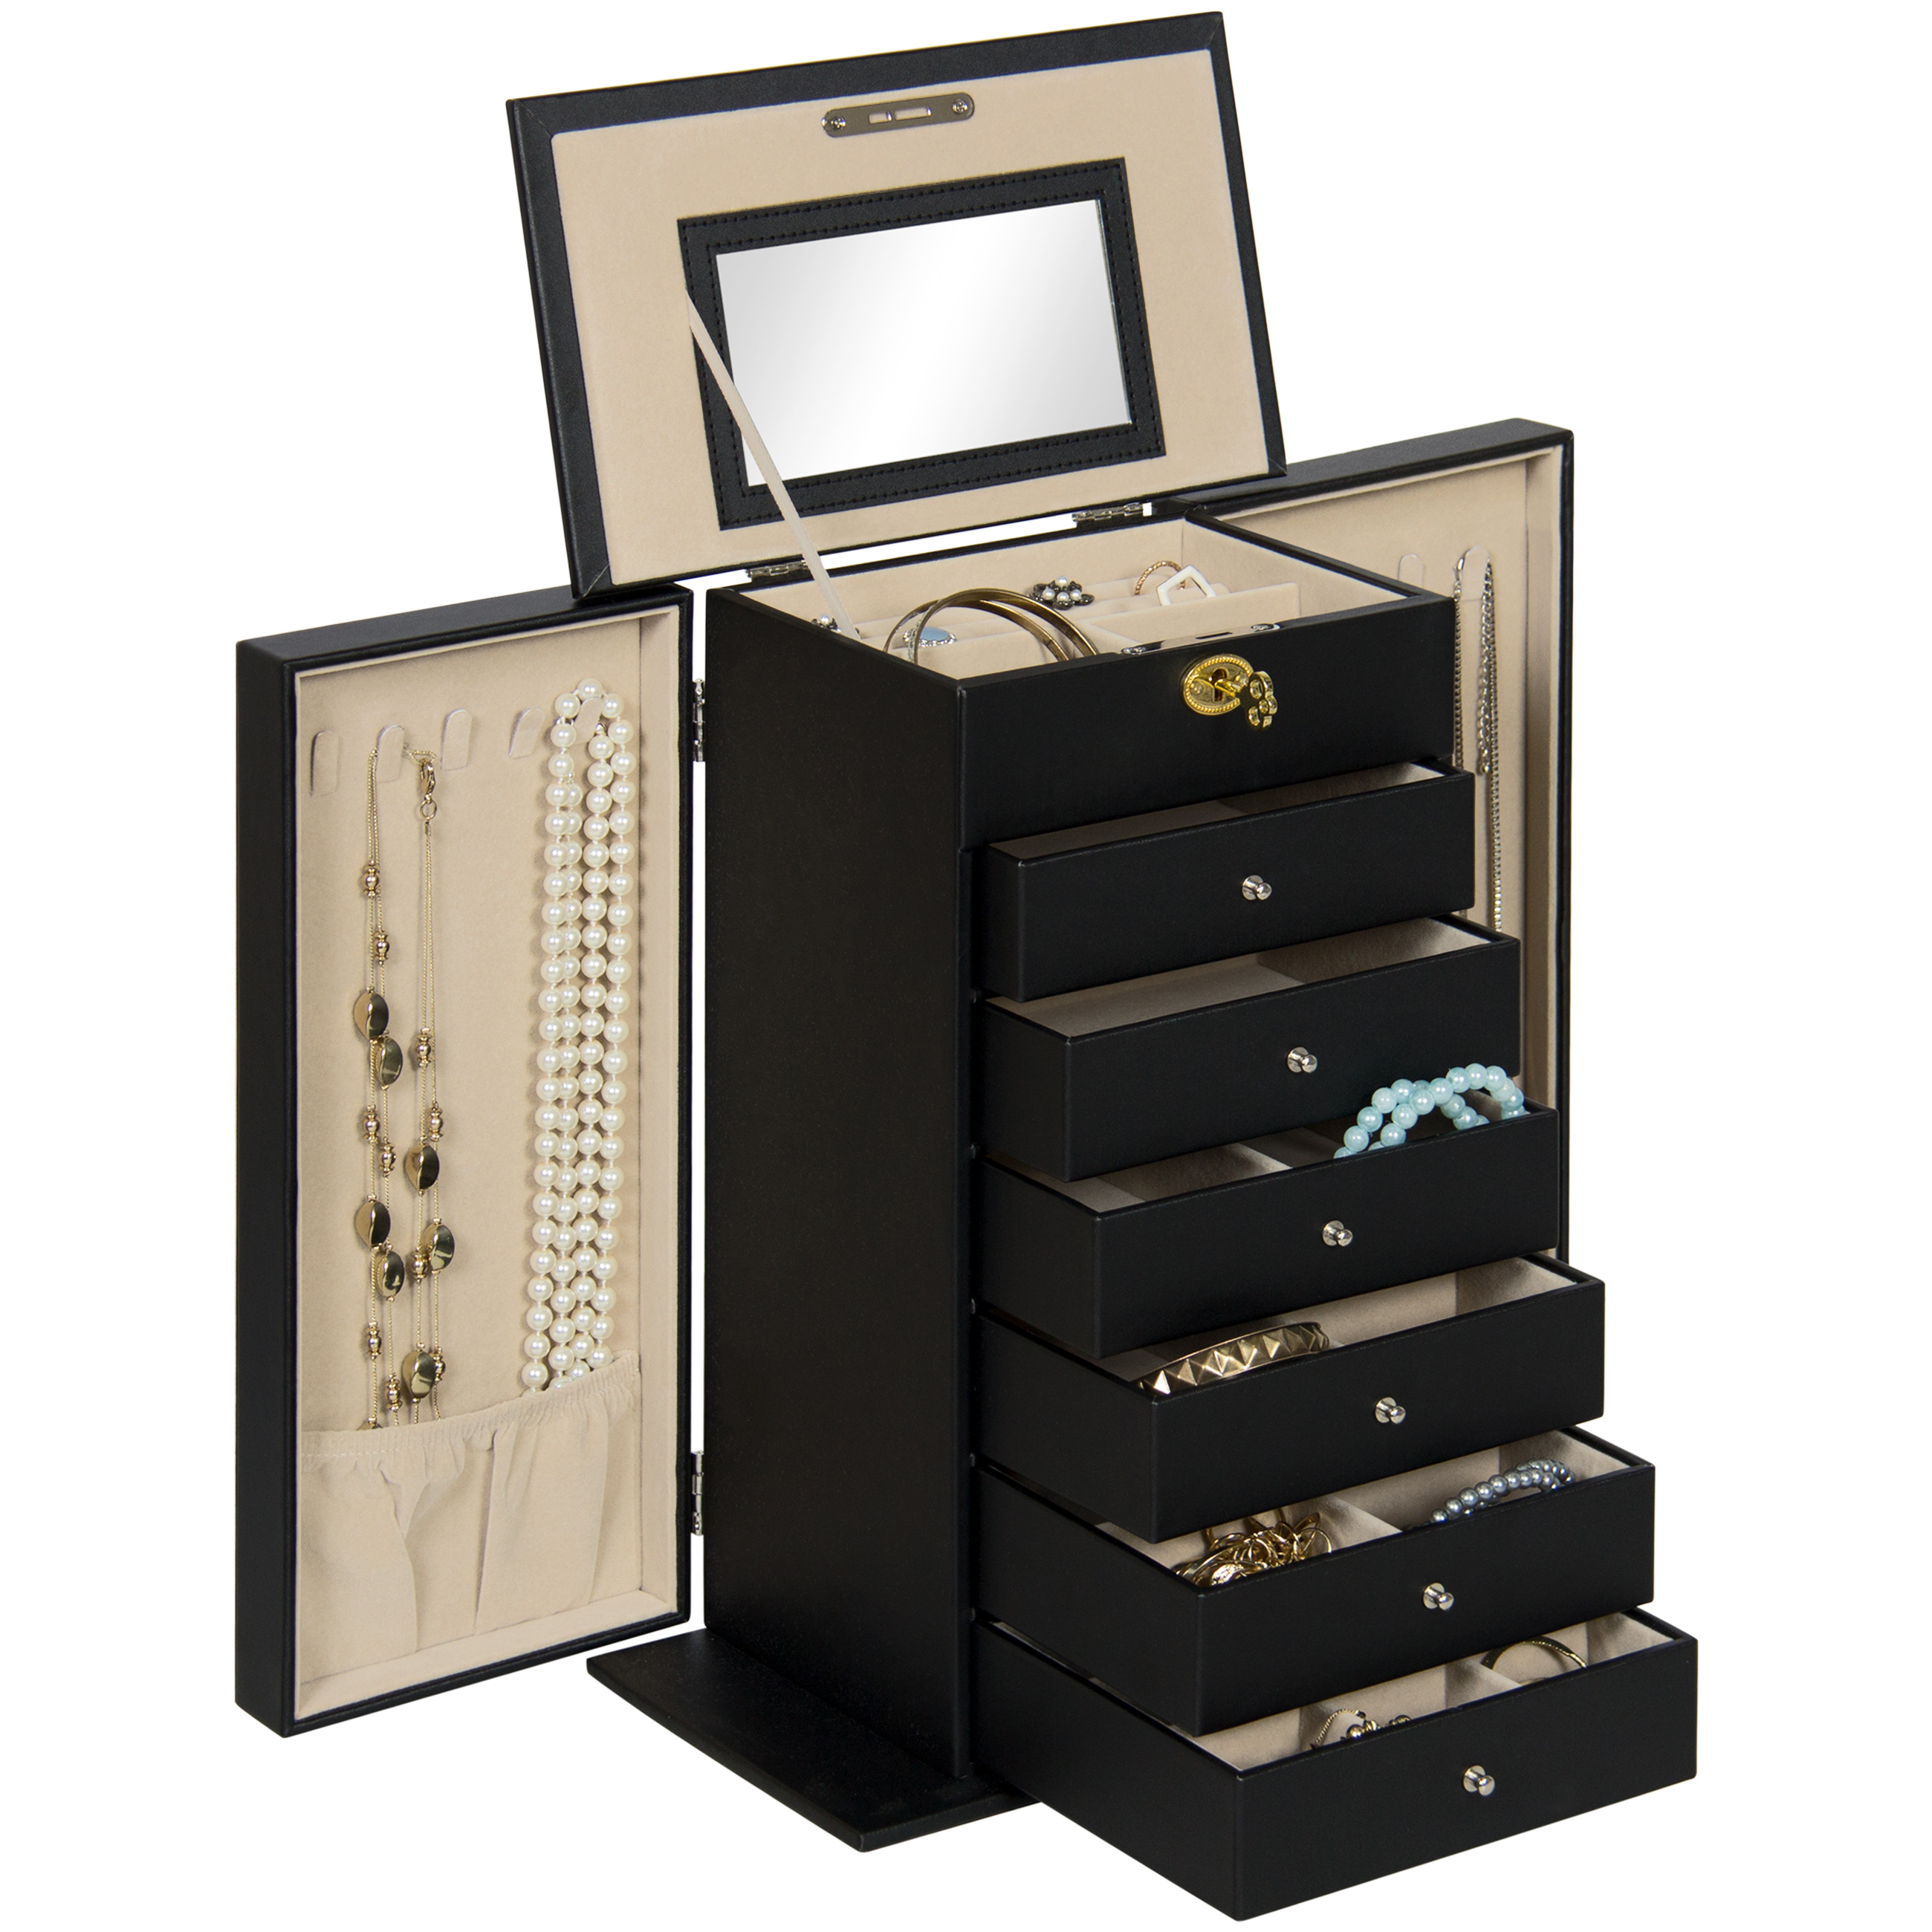 Best Choice Products Handcrafted Leather Jewelry Box Organize Armoire Cabinet by Best Choice Products